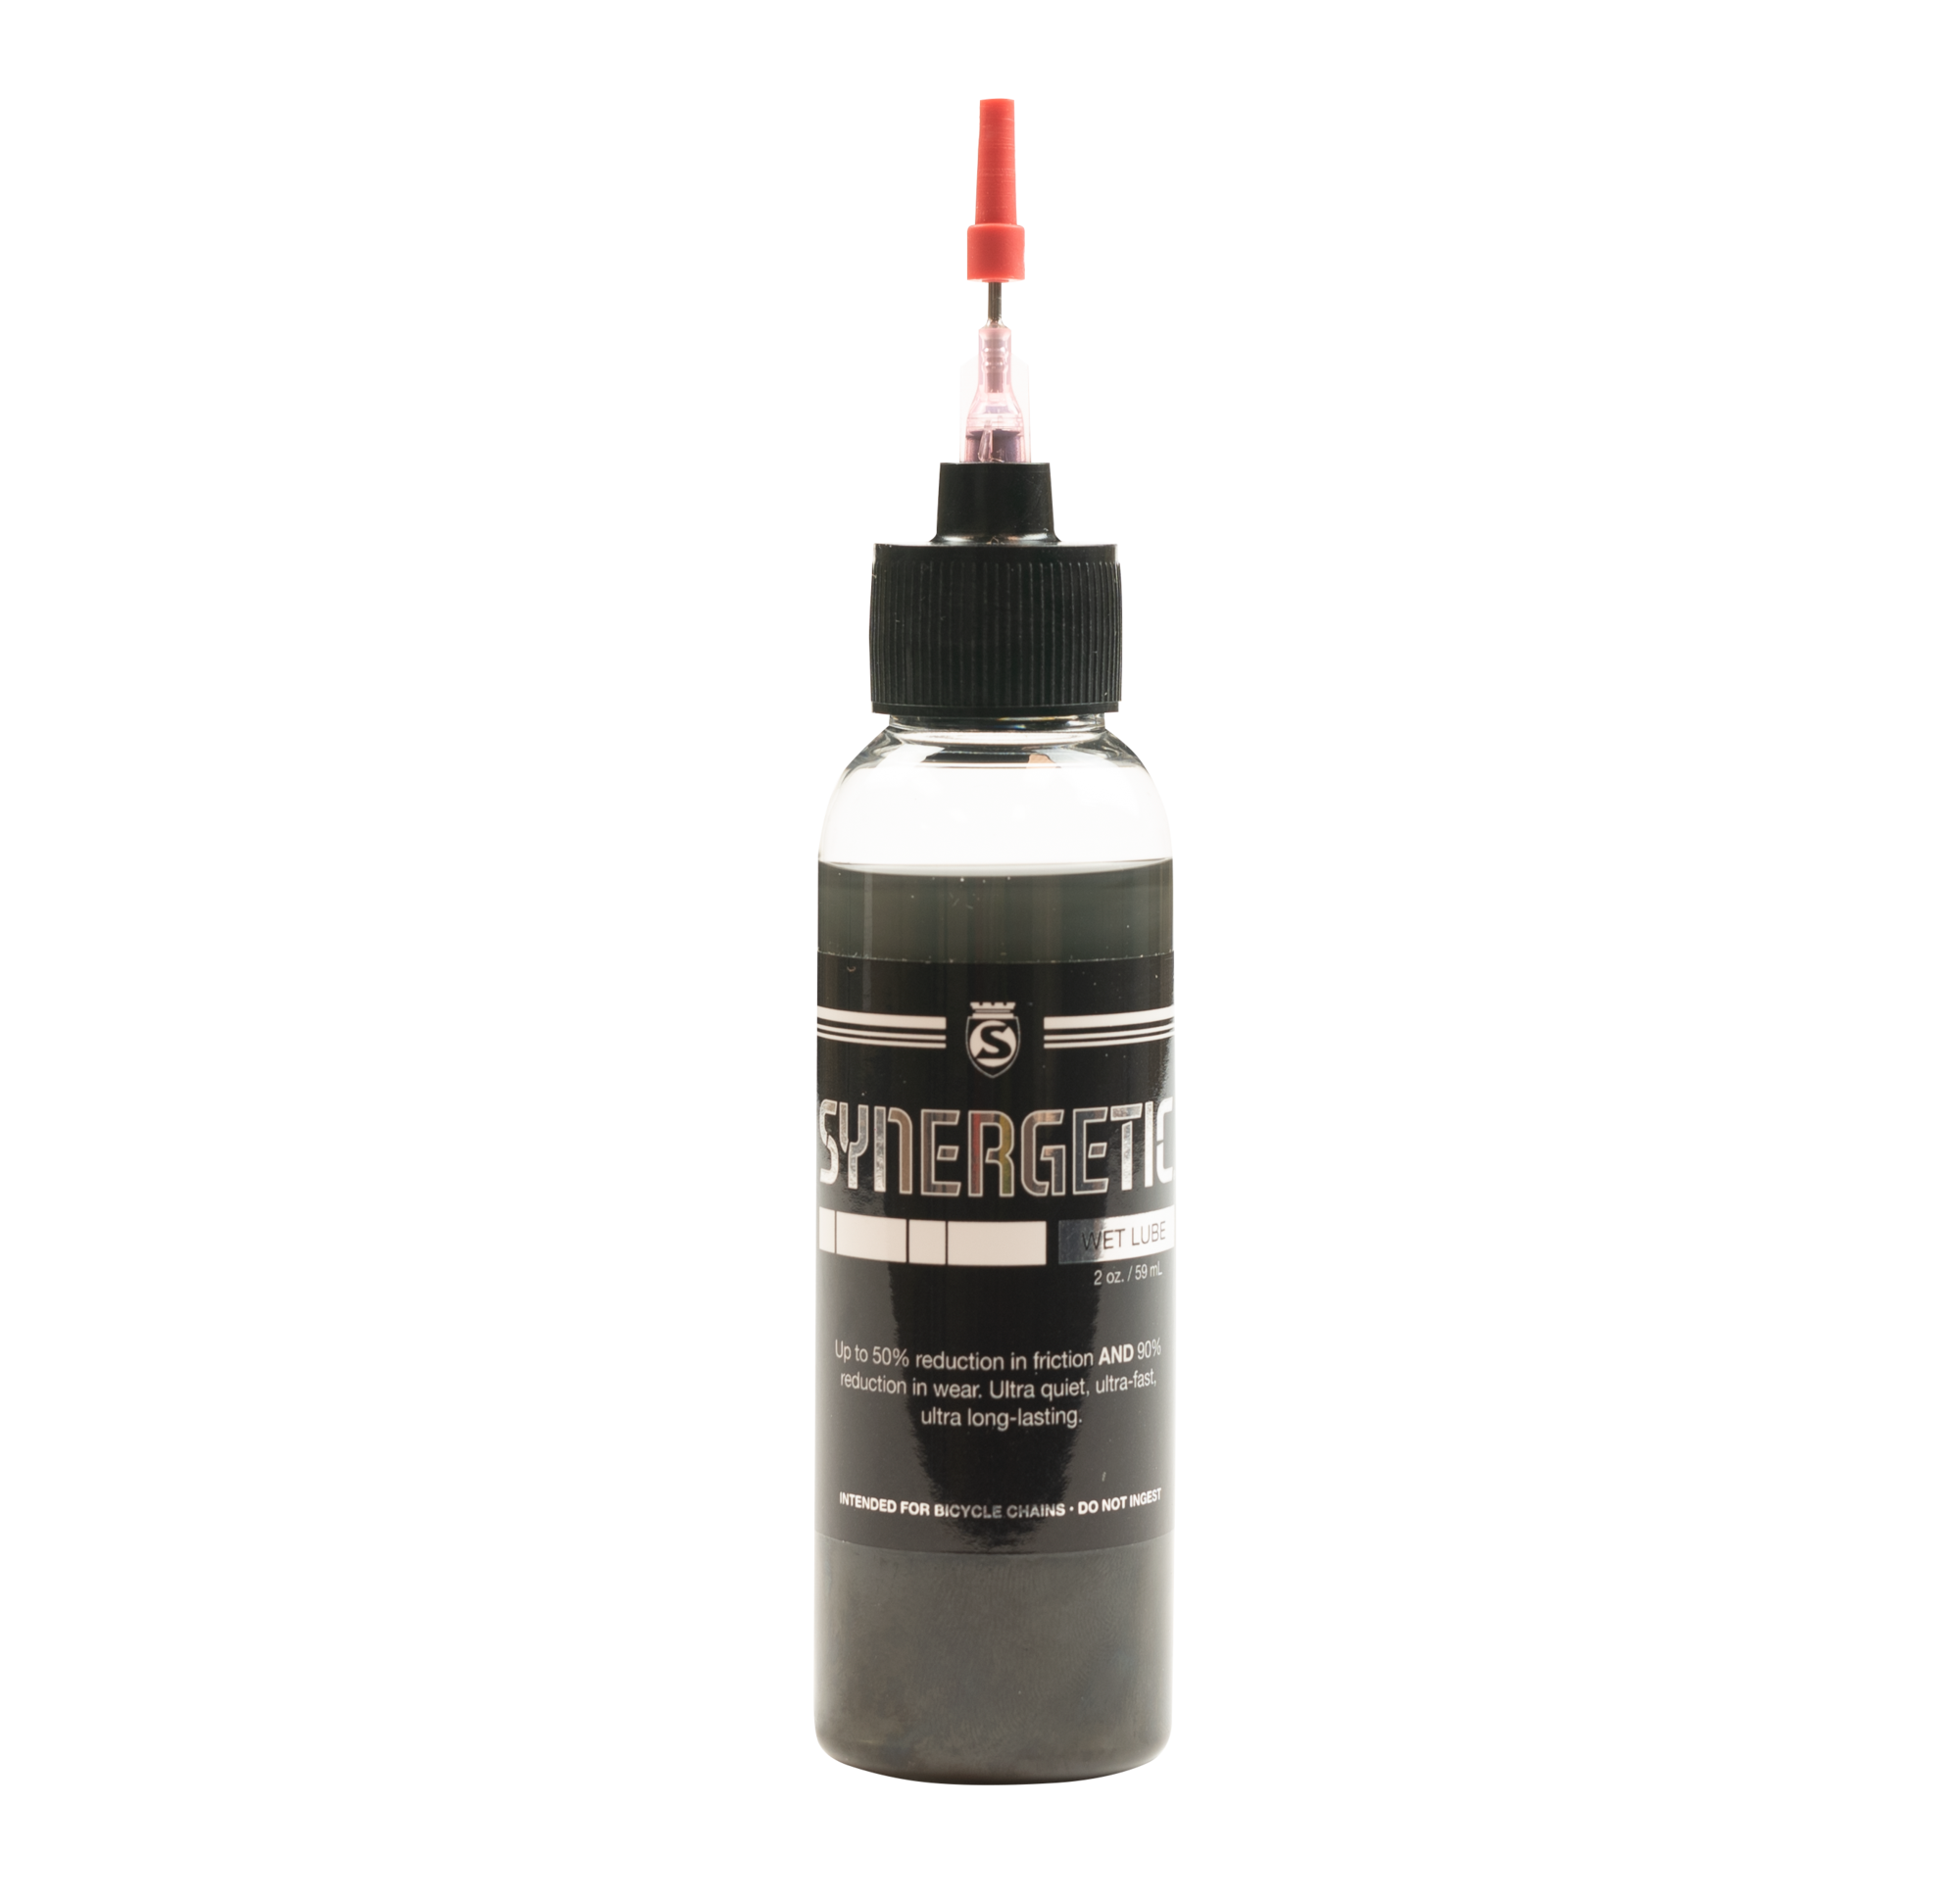 Silca Synergetic Drip Lube